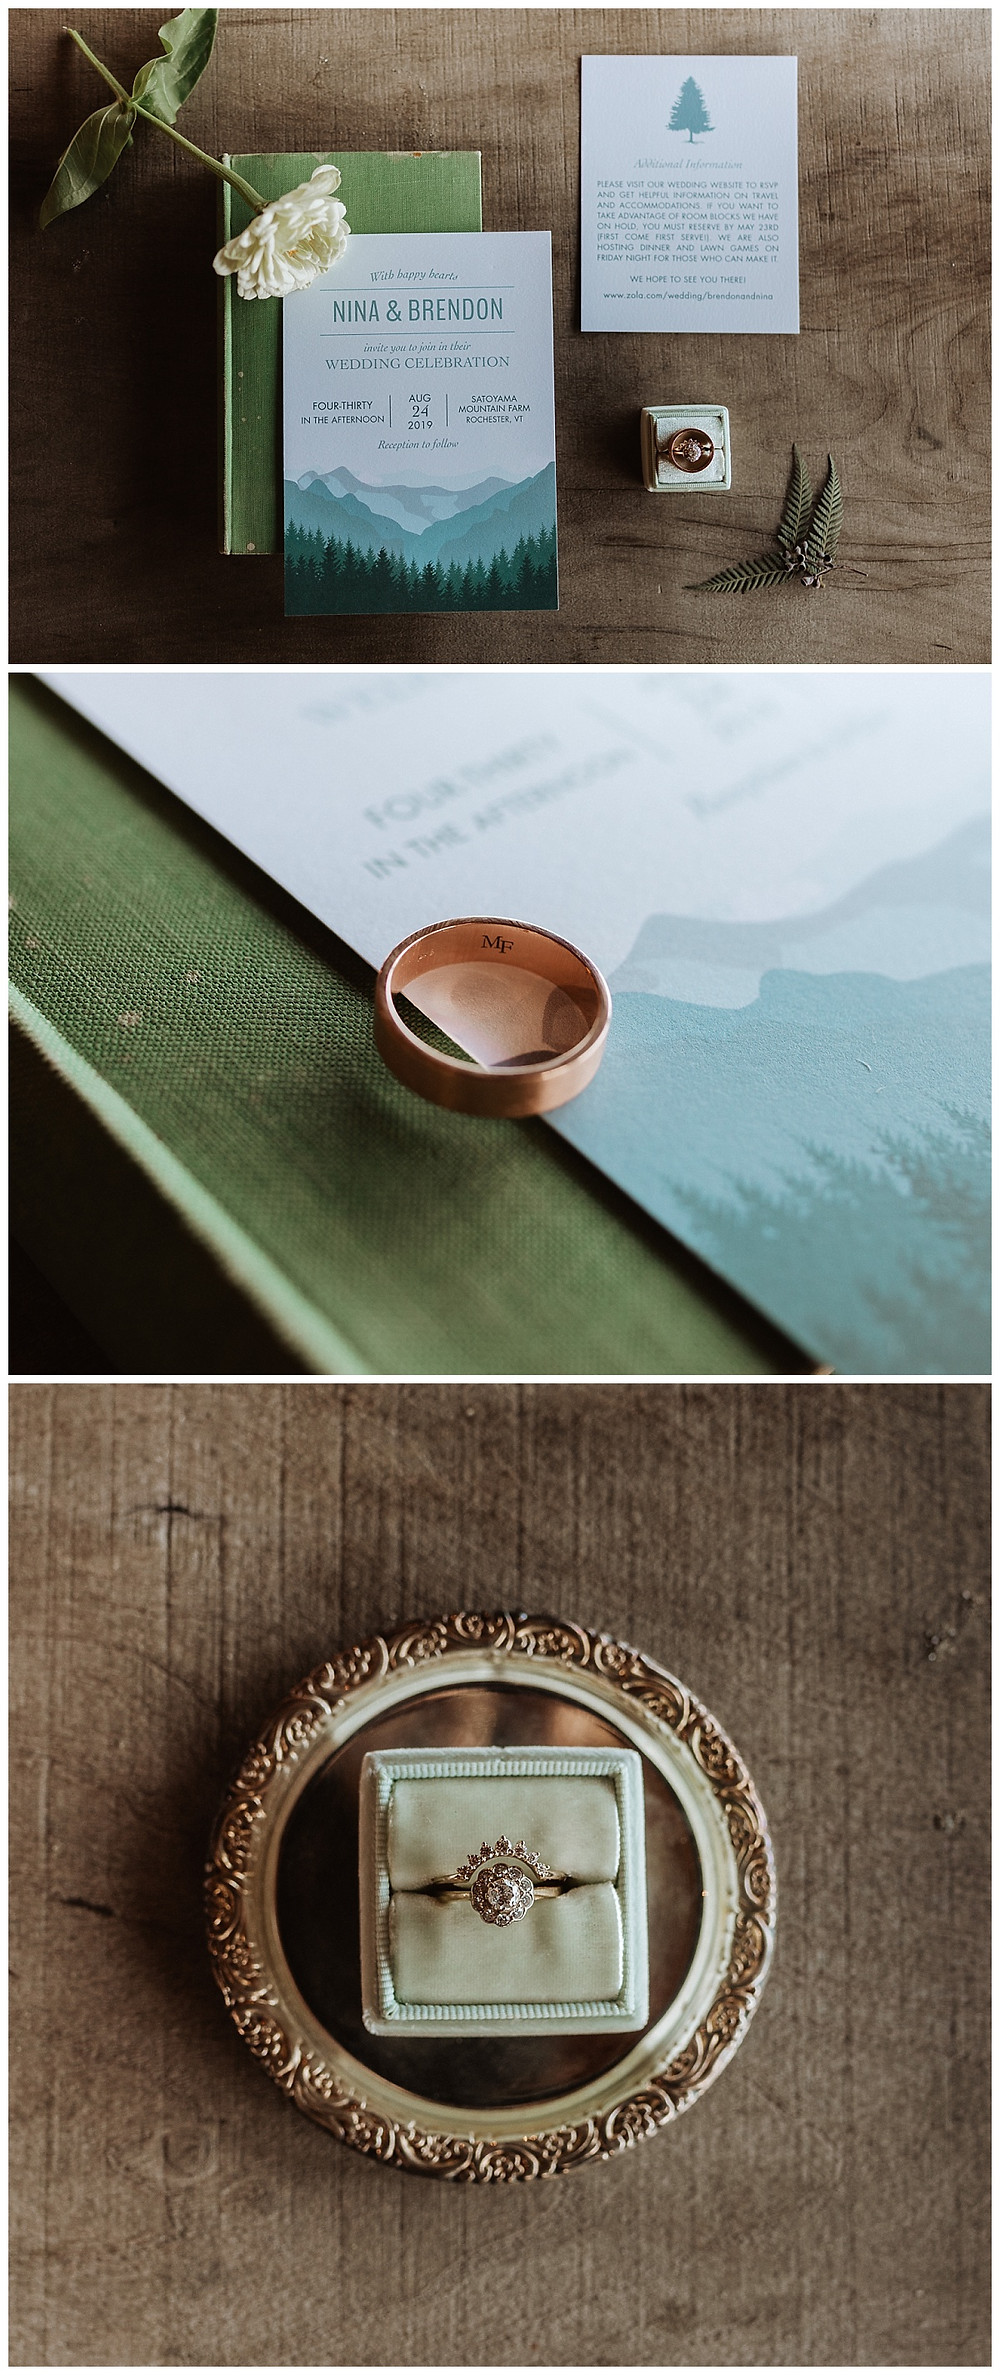 Wedding Stationary Details and Rings in Mint Velvet Ring Box